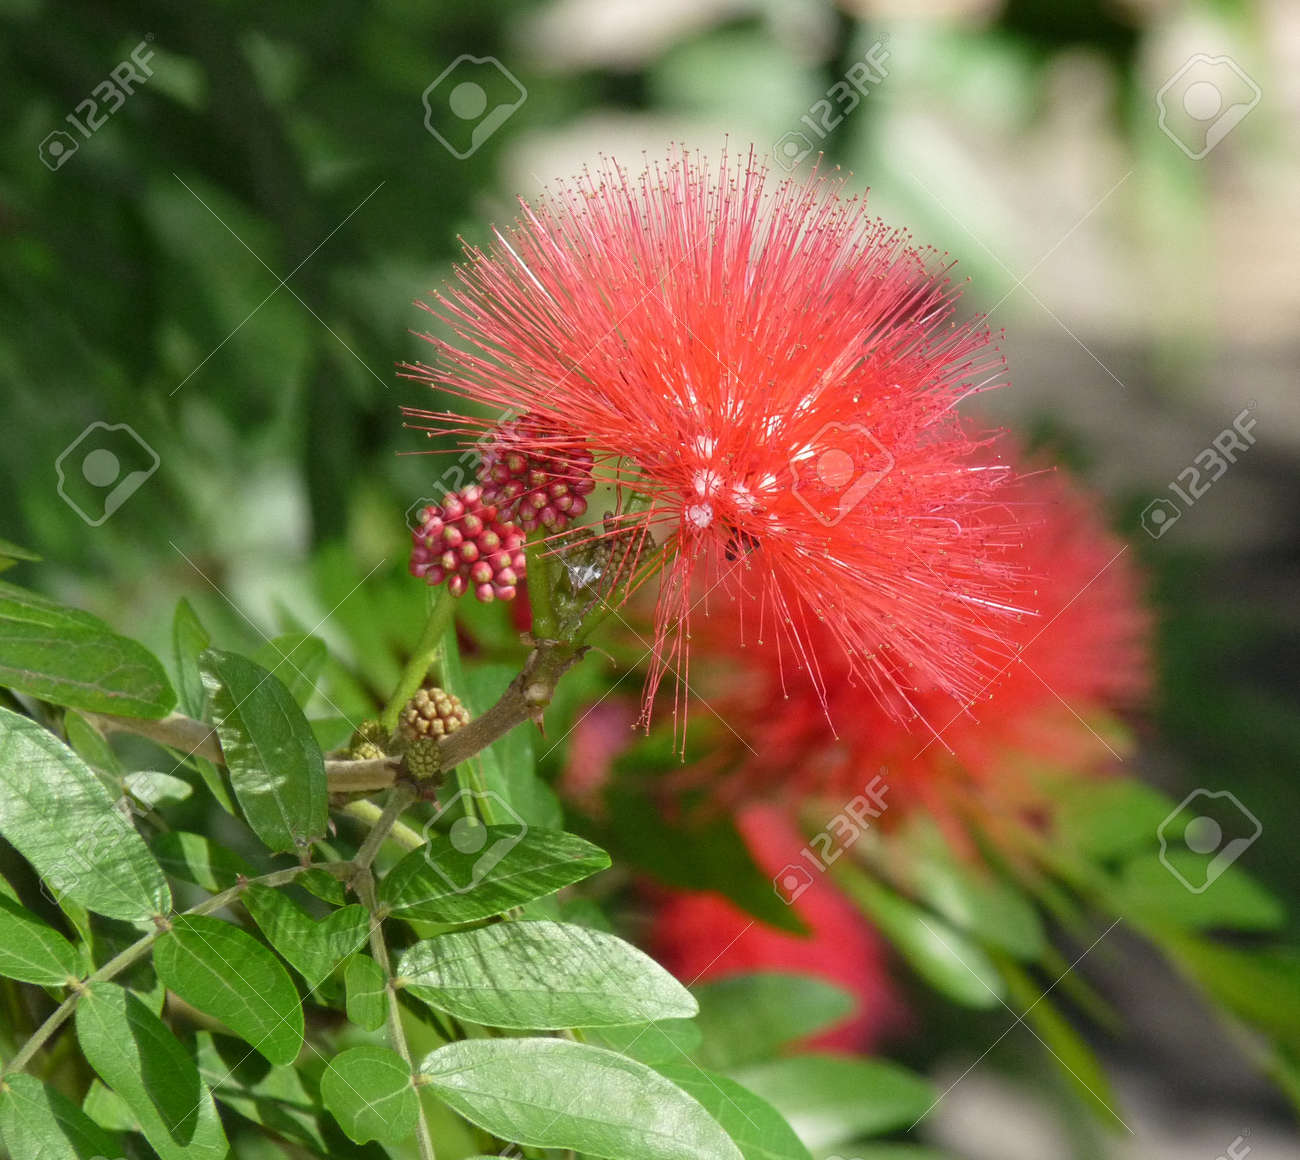 A pretty red dandelion looking flower up close stock photo picture a pretty red dandelion looking flower up close stock photo 4421284 mightylinksfo